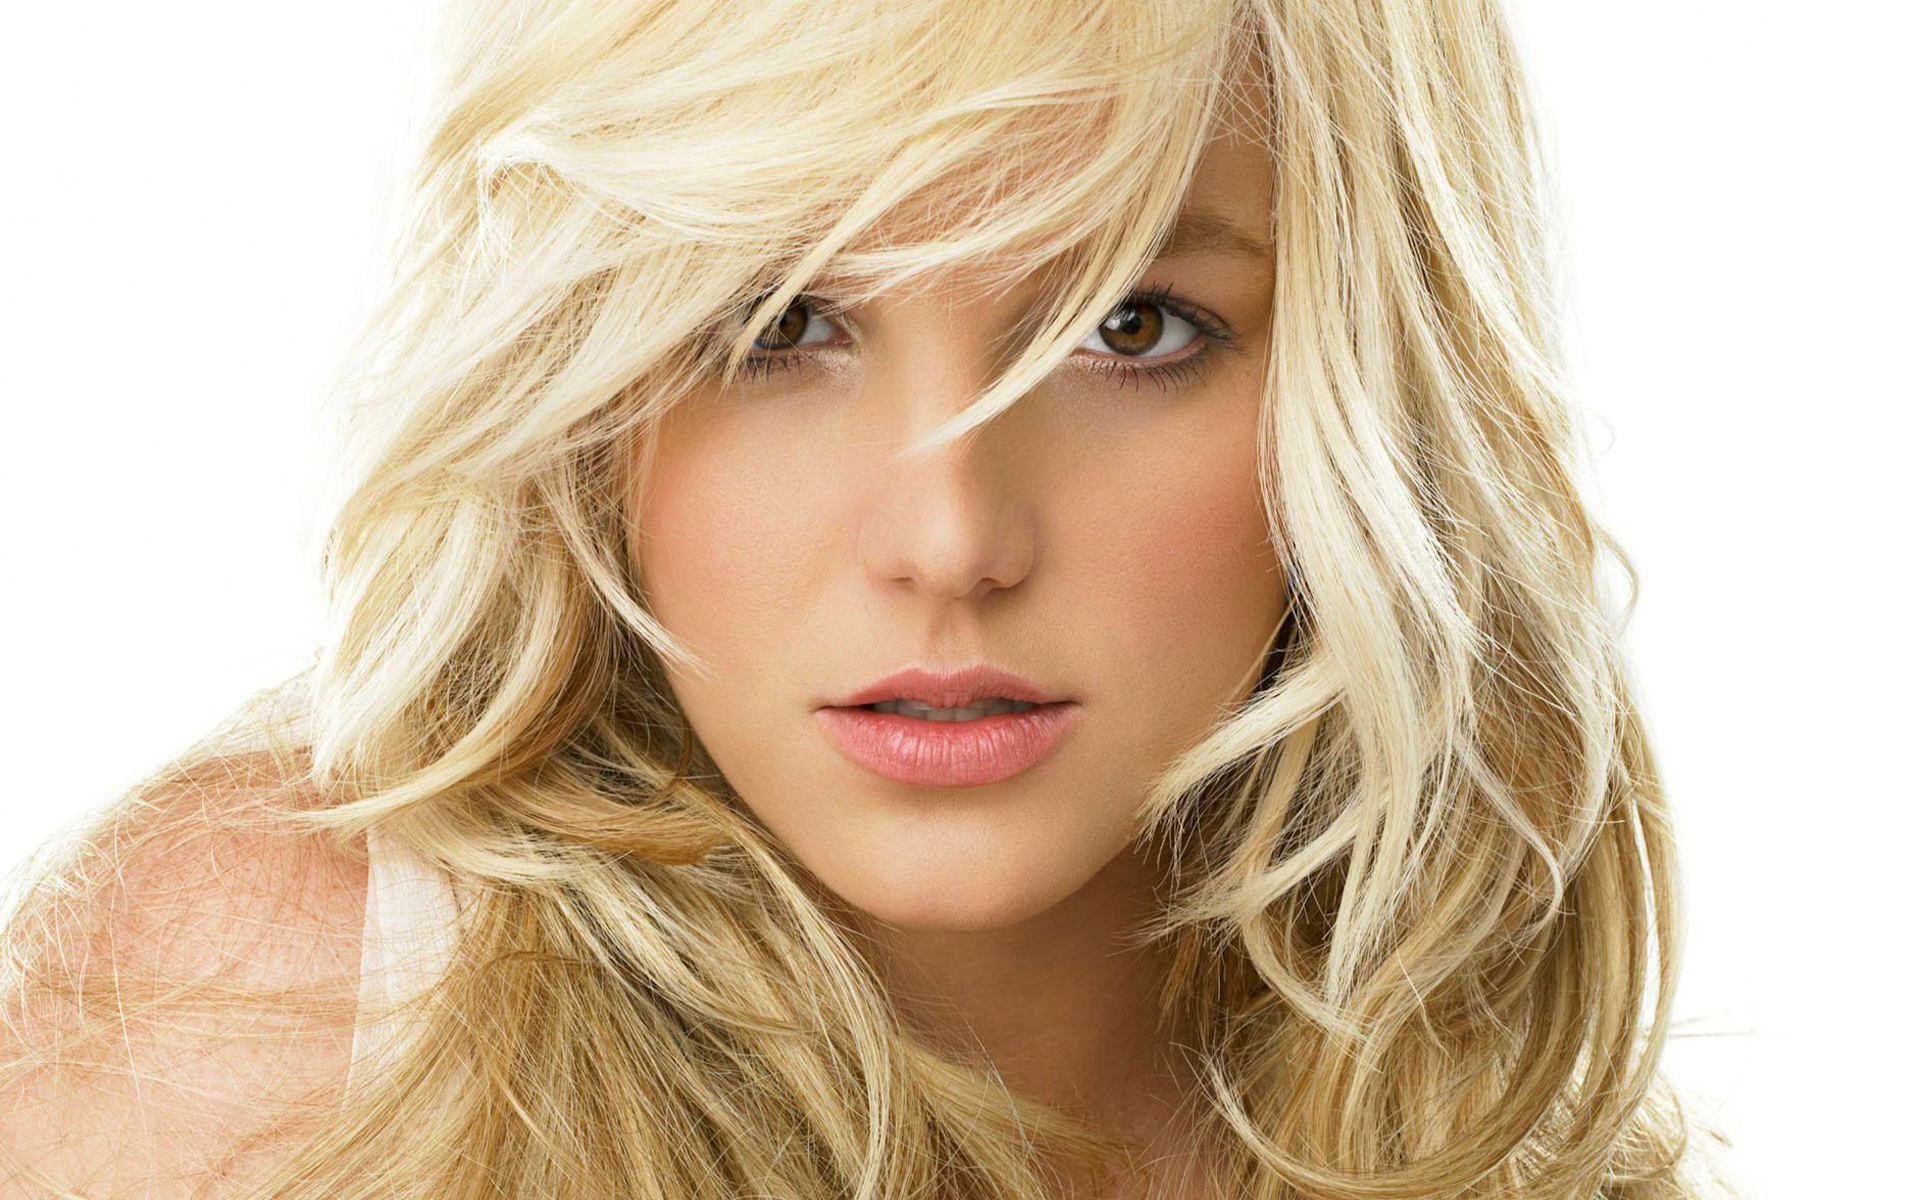 Britney Spears Music wallpapers Crazy Frankenstein | HD Wallpapers ...